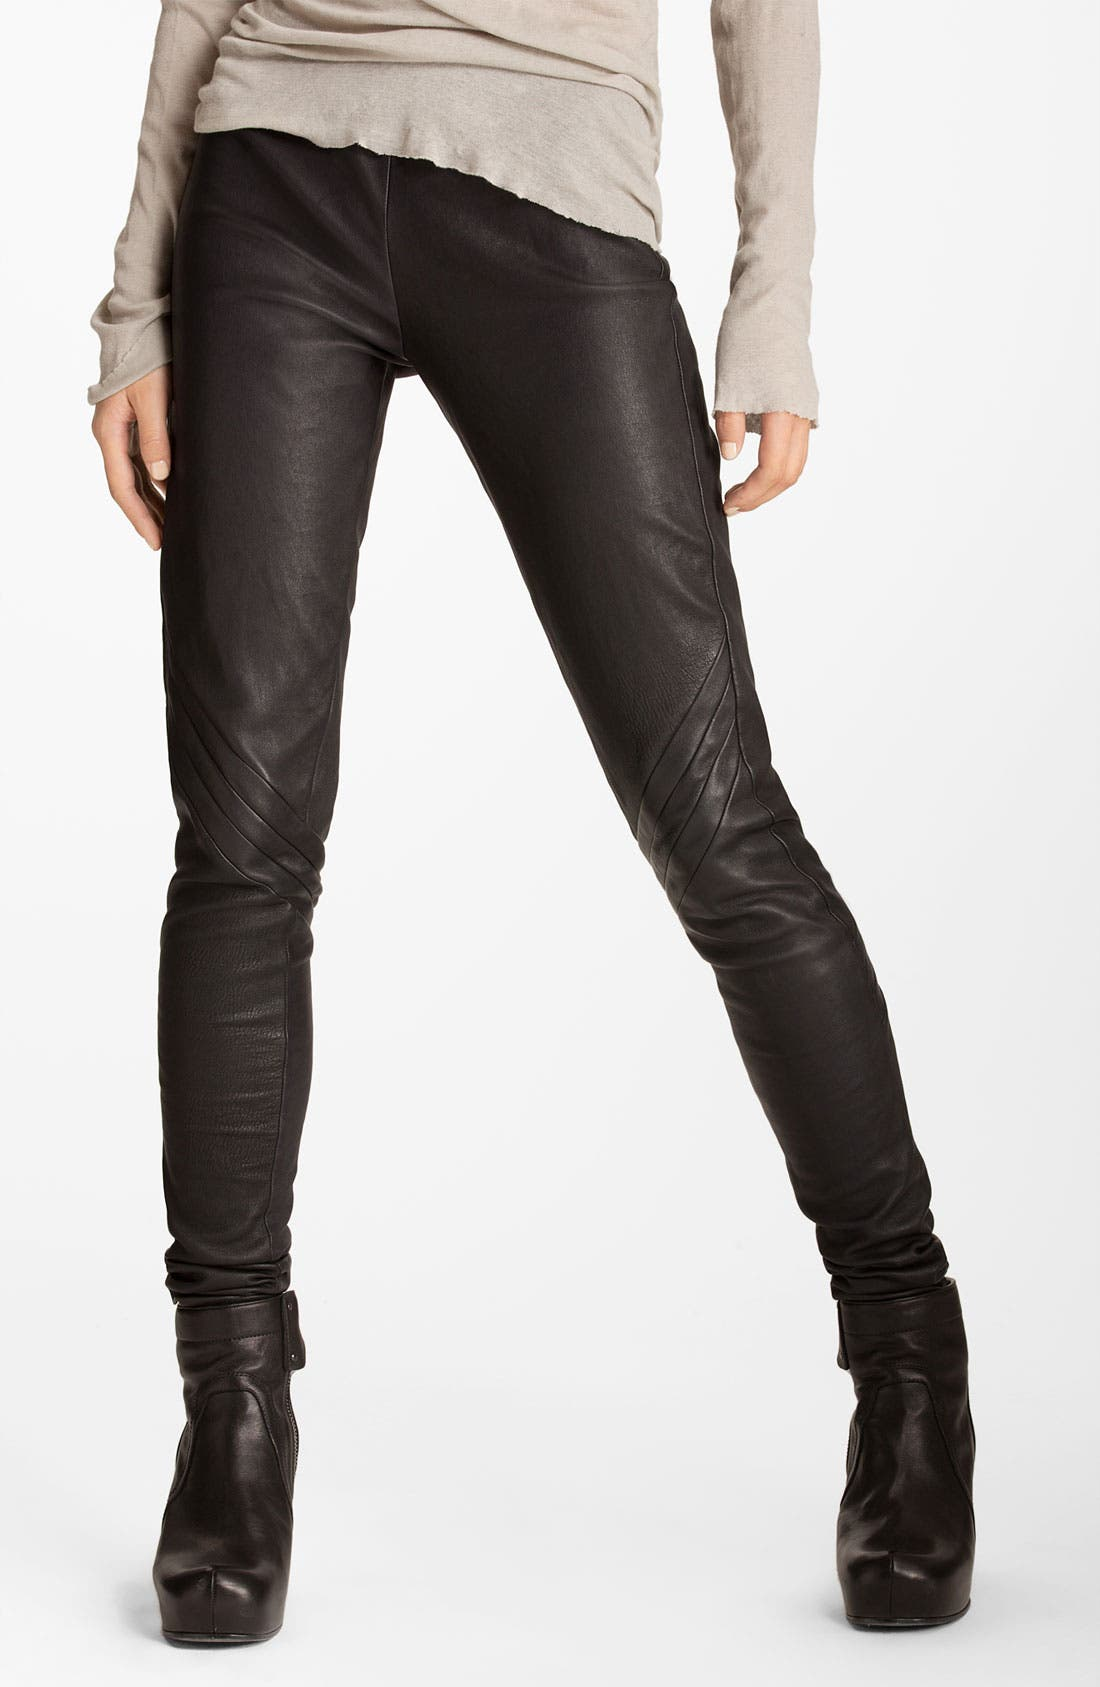 Alternate Image 1 Selected - Rick Owens Leather Leggings